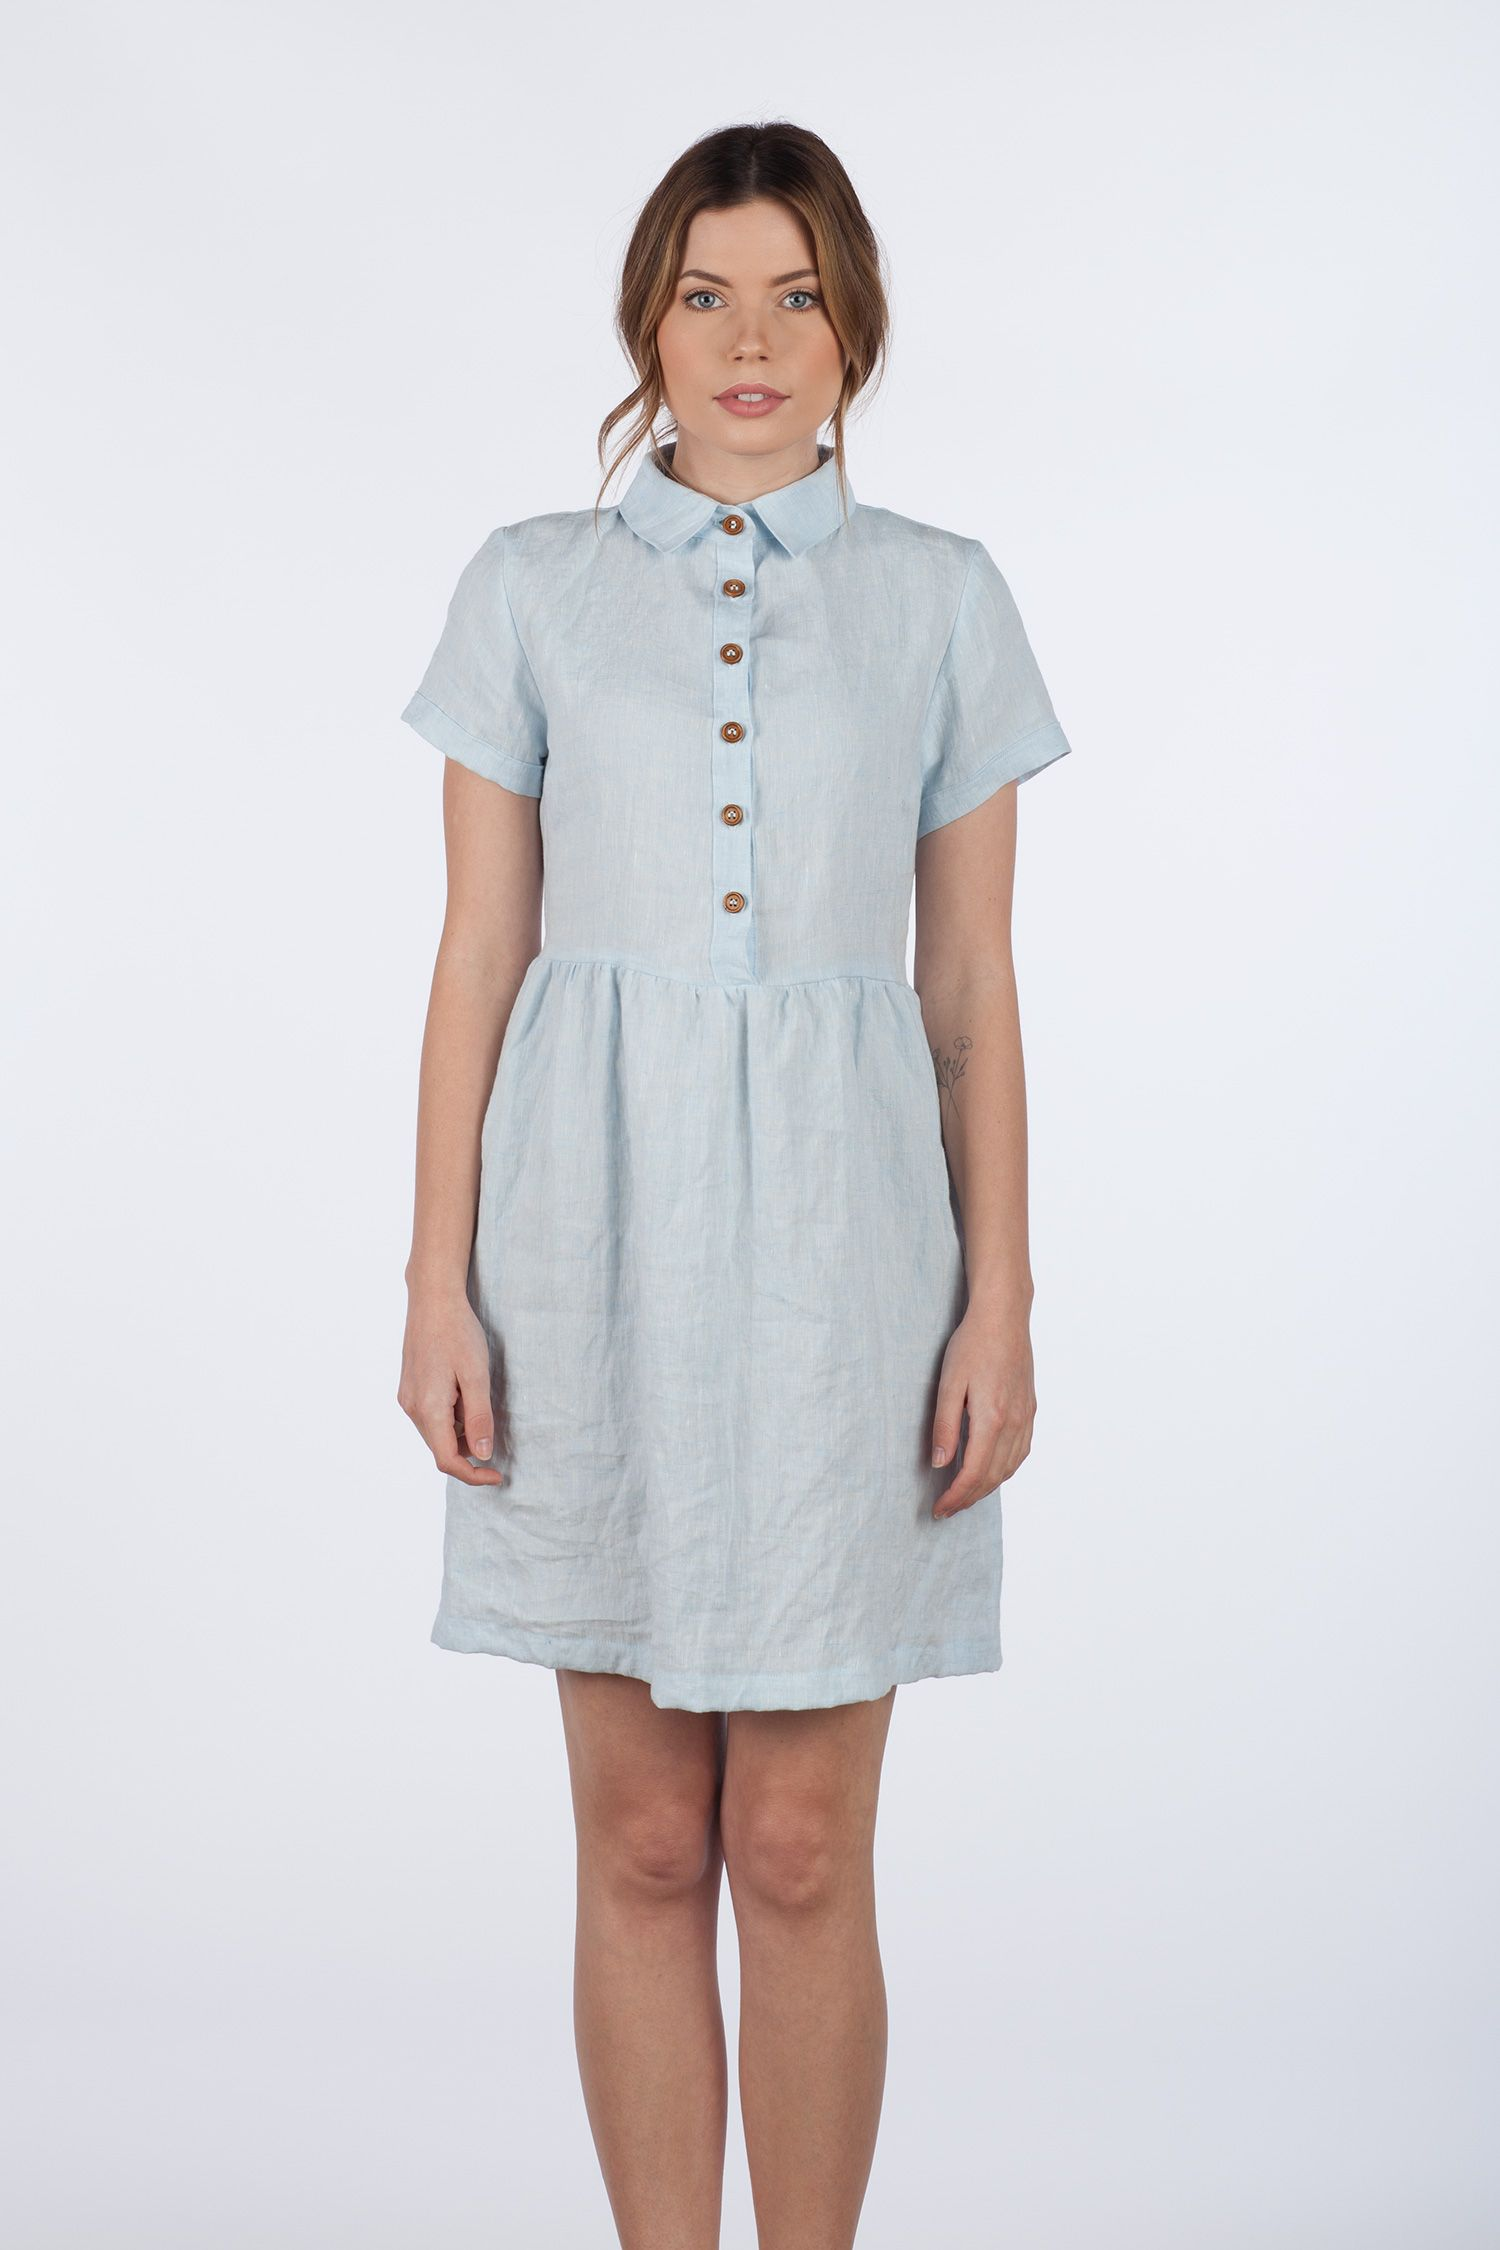 Model no powder blue linen collared button up short sleeve